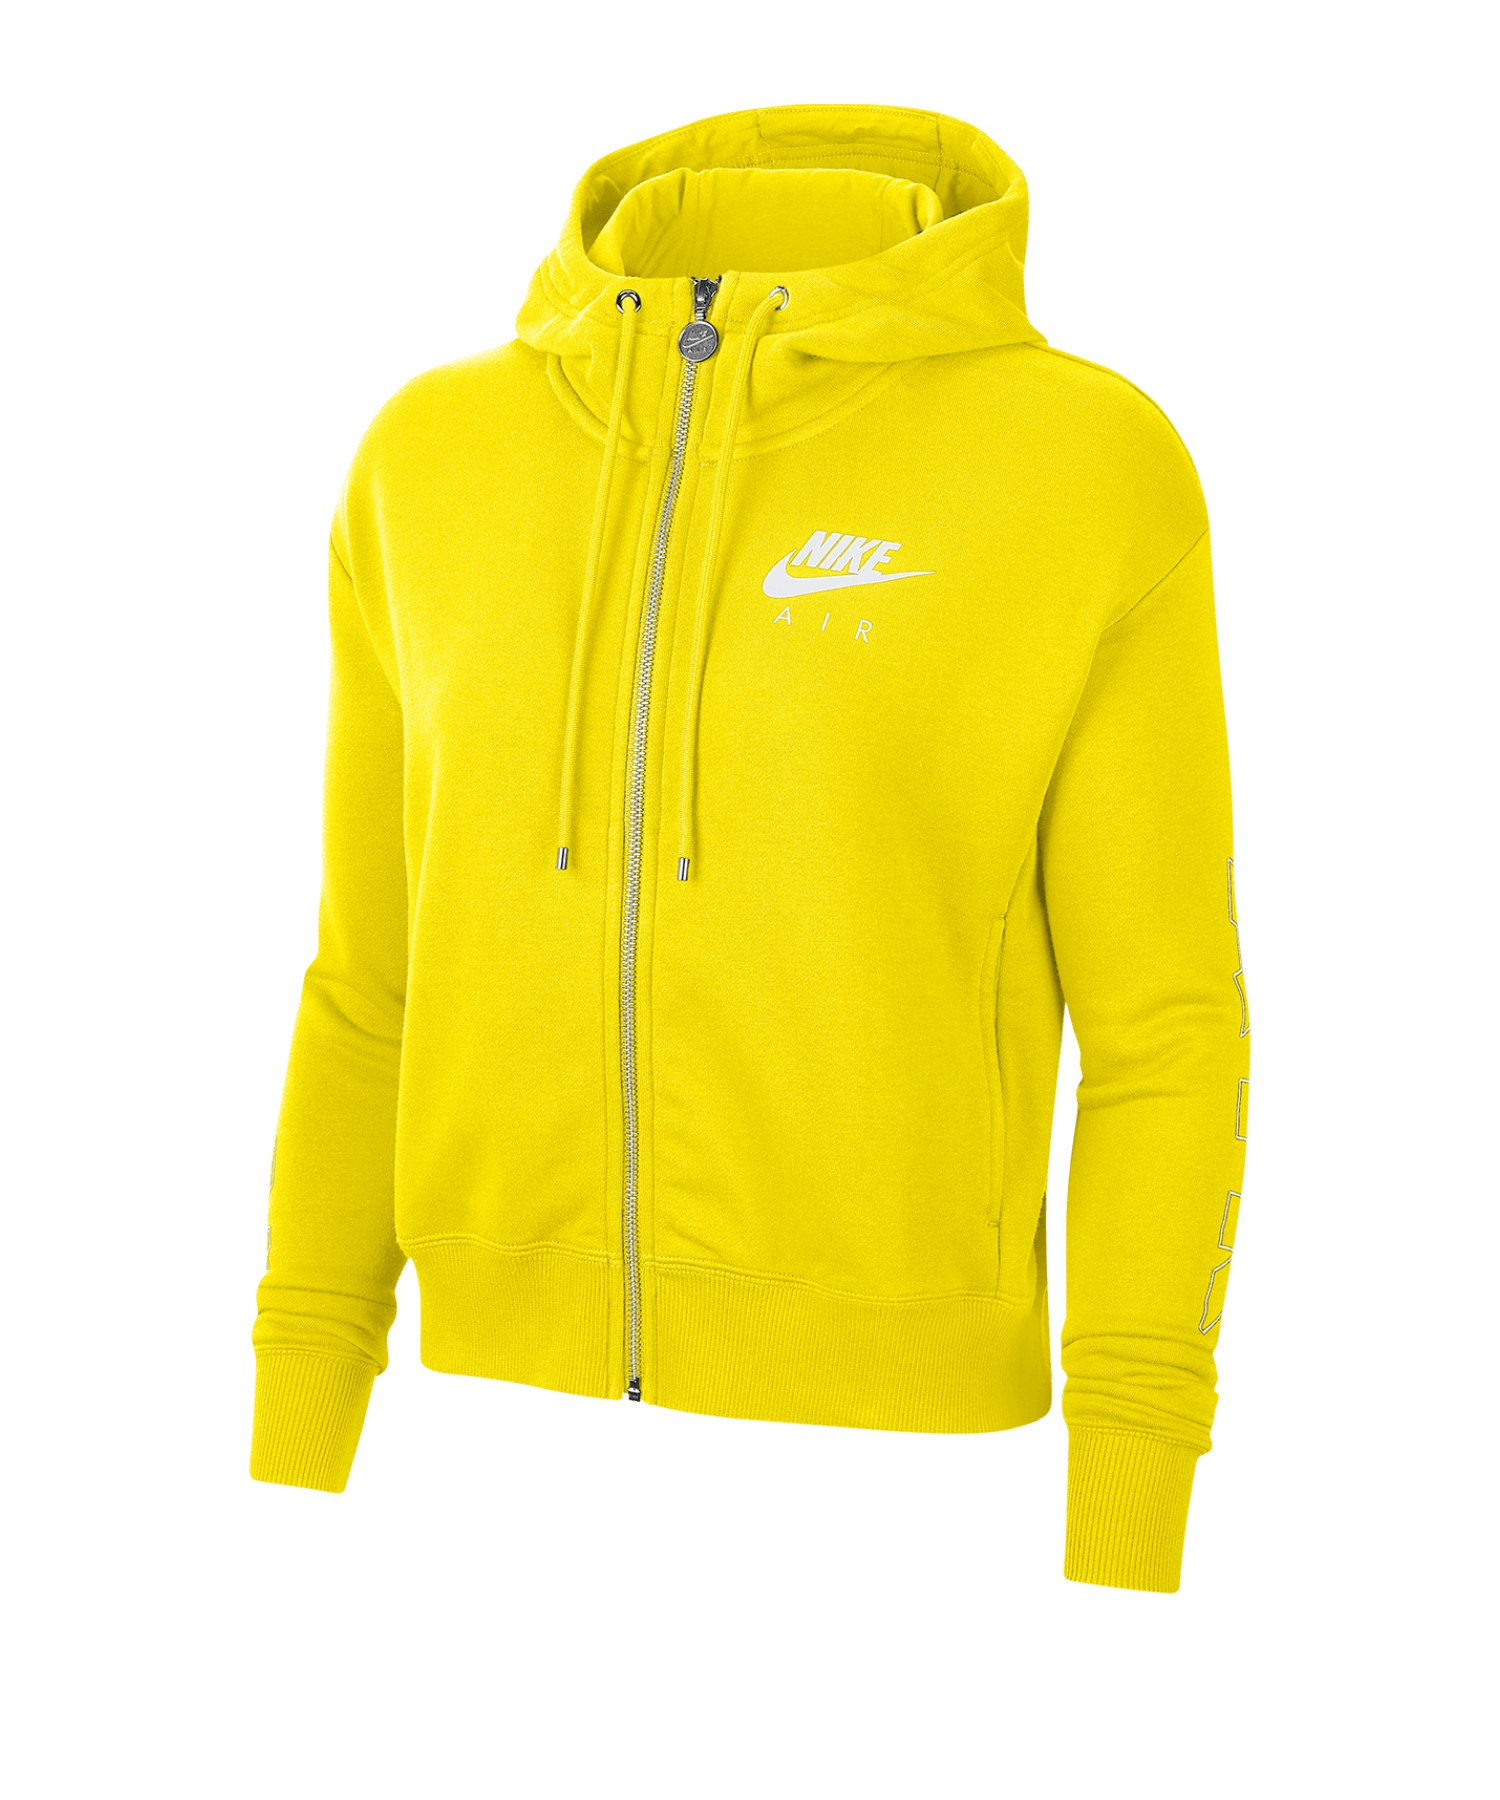 Nike Air Fleece Kapuzenjacke Damen Gelb F731 - gelb